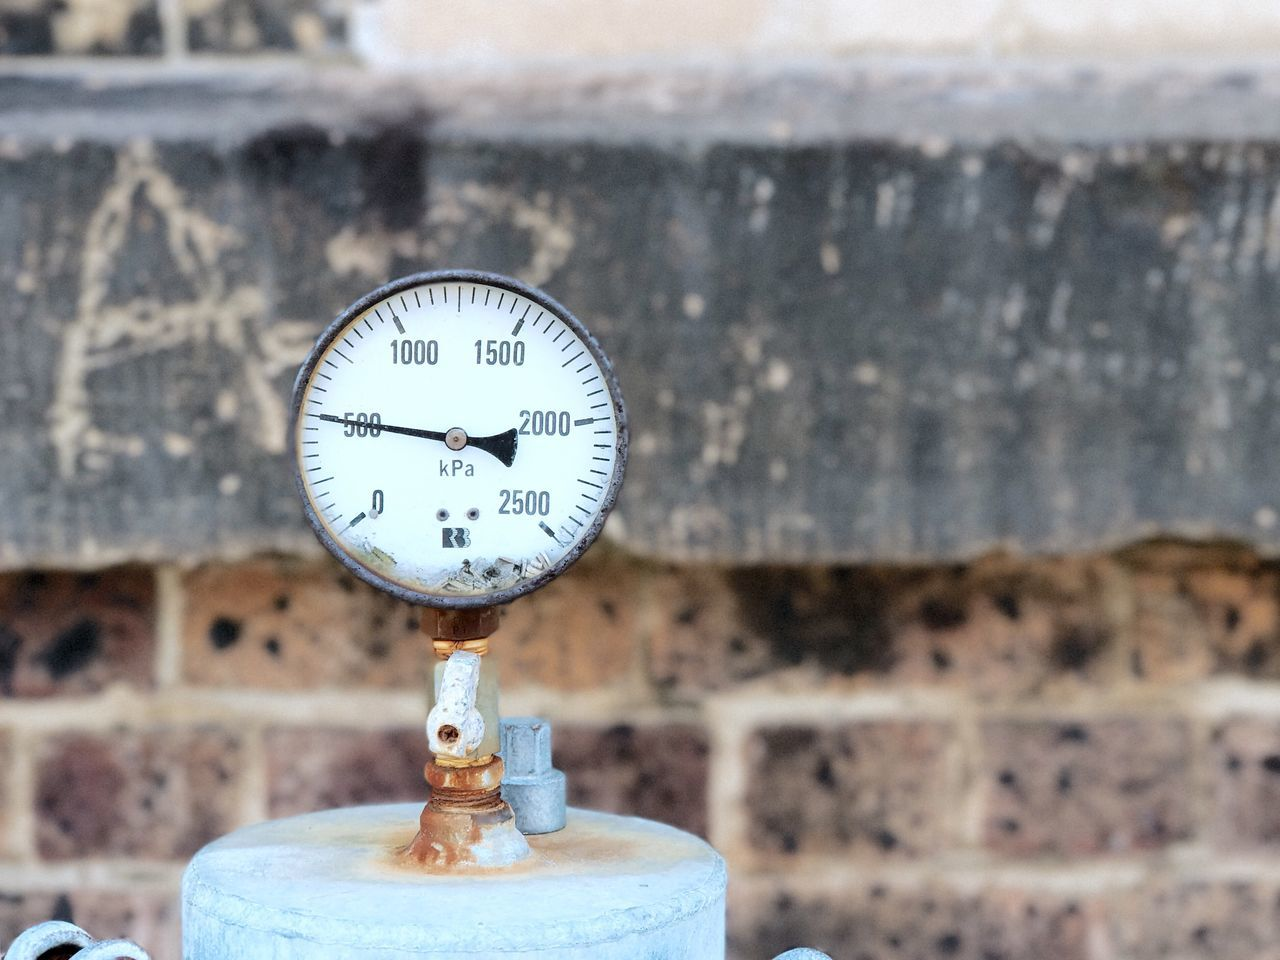 Focus On Foreground Close-up Gauge Thermometer Pressure Gauge No People Day